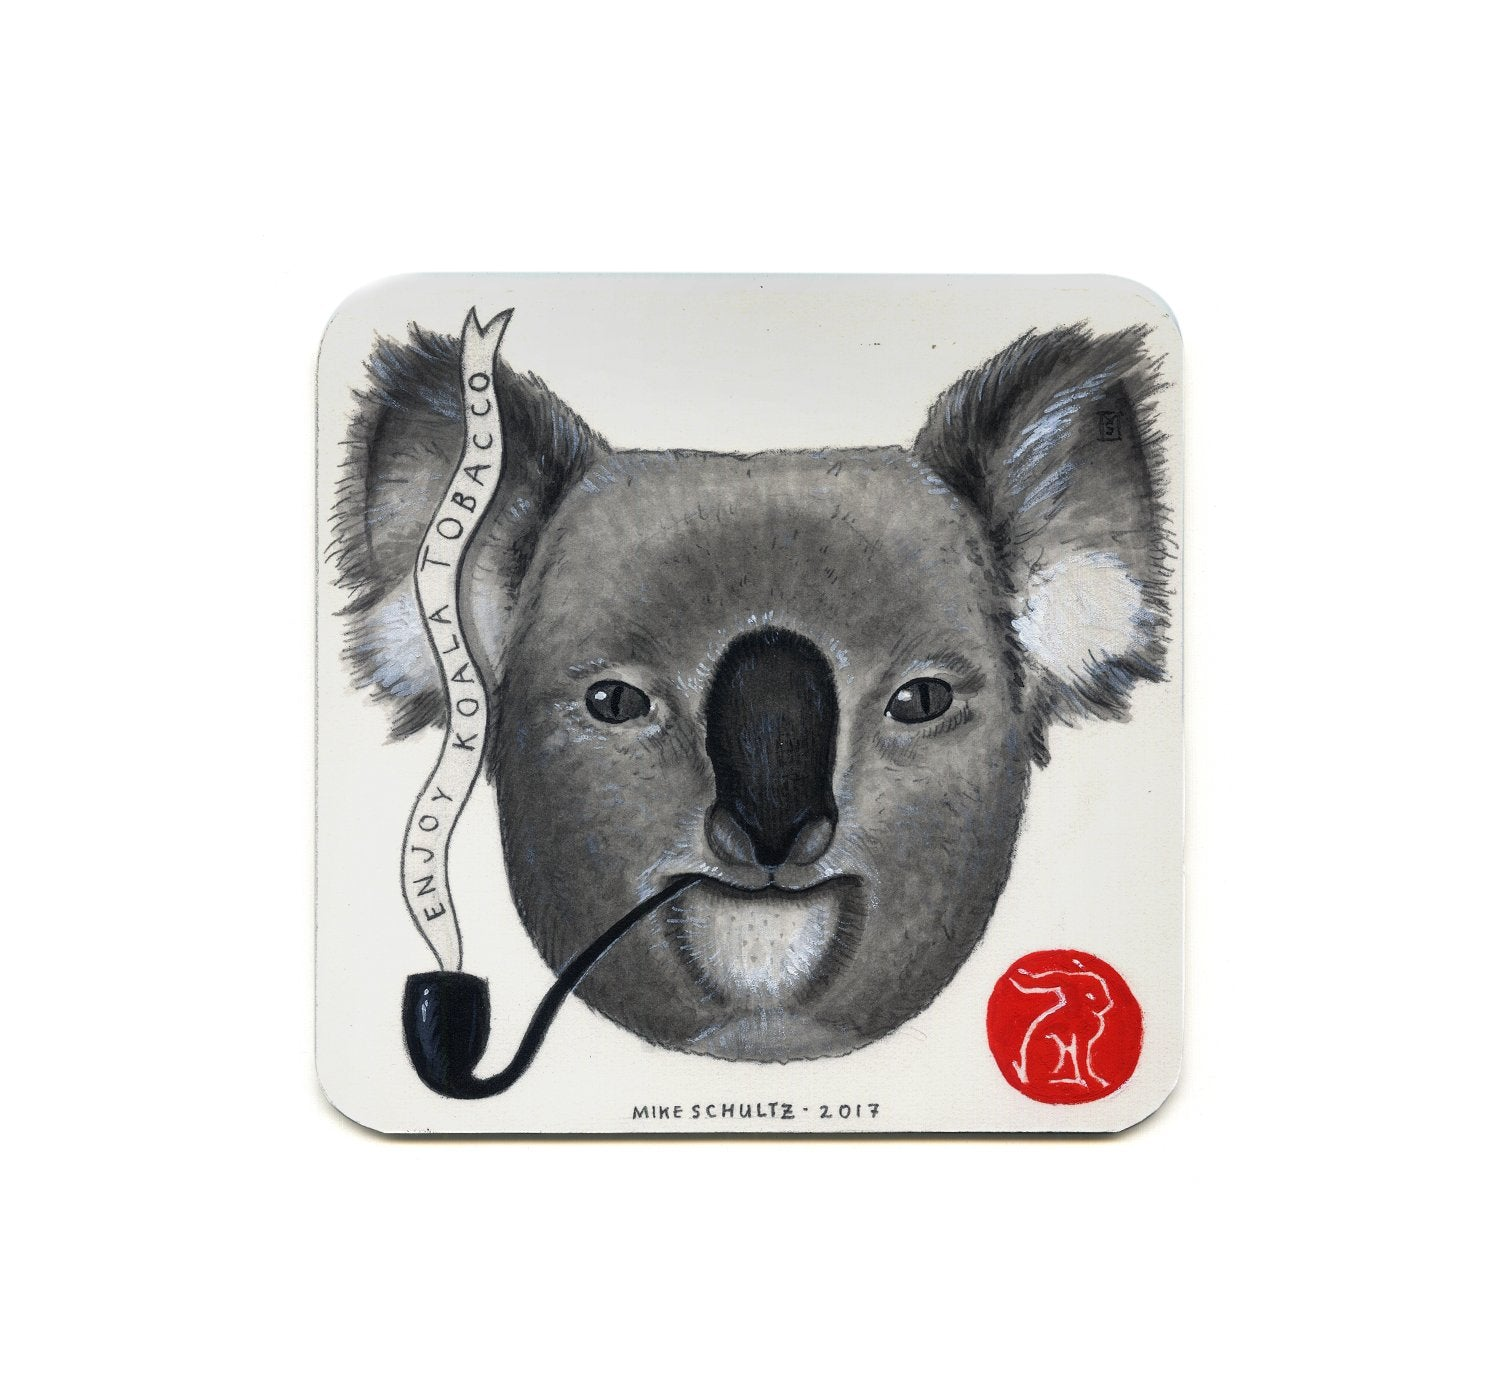 Mike Schultz - Enjoy Koala Tobacco